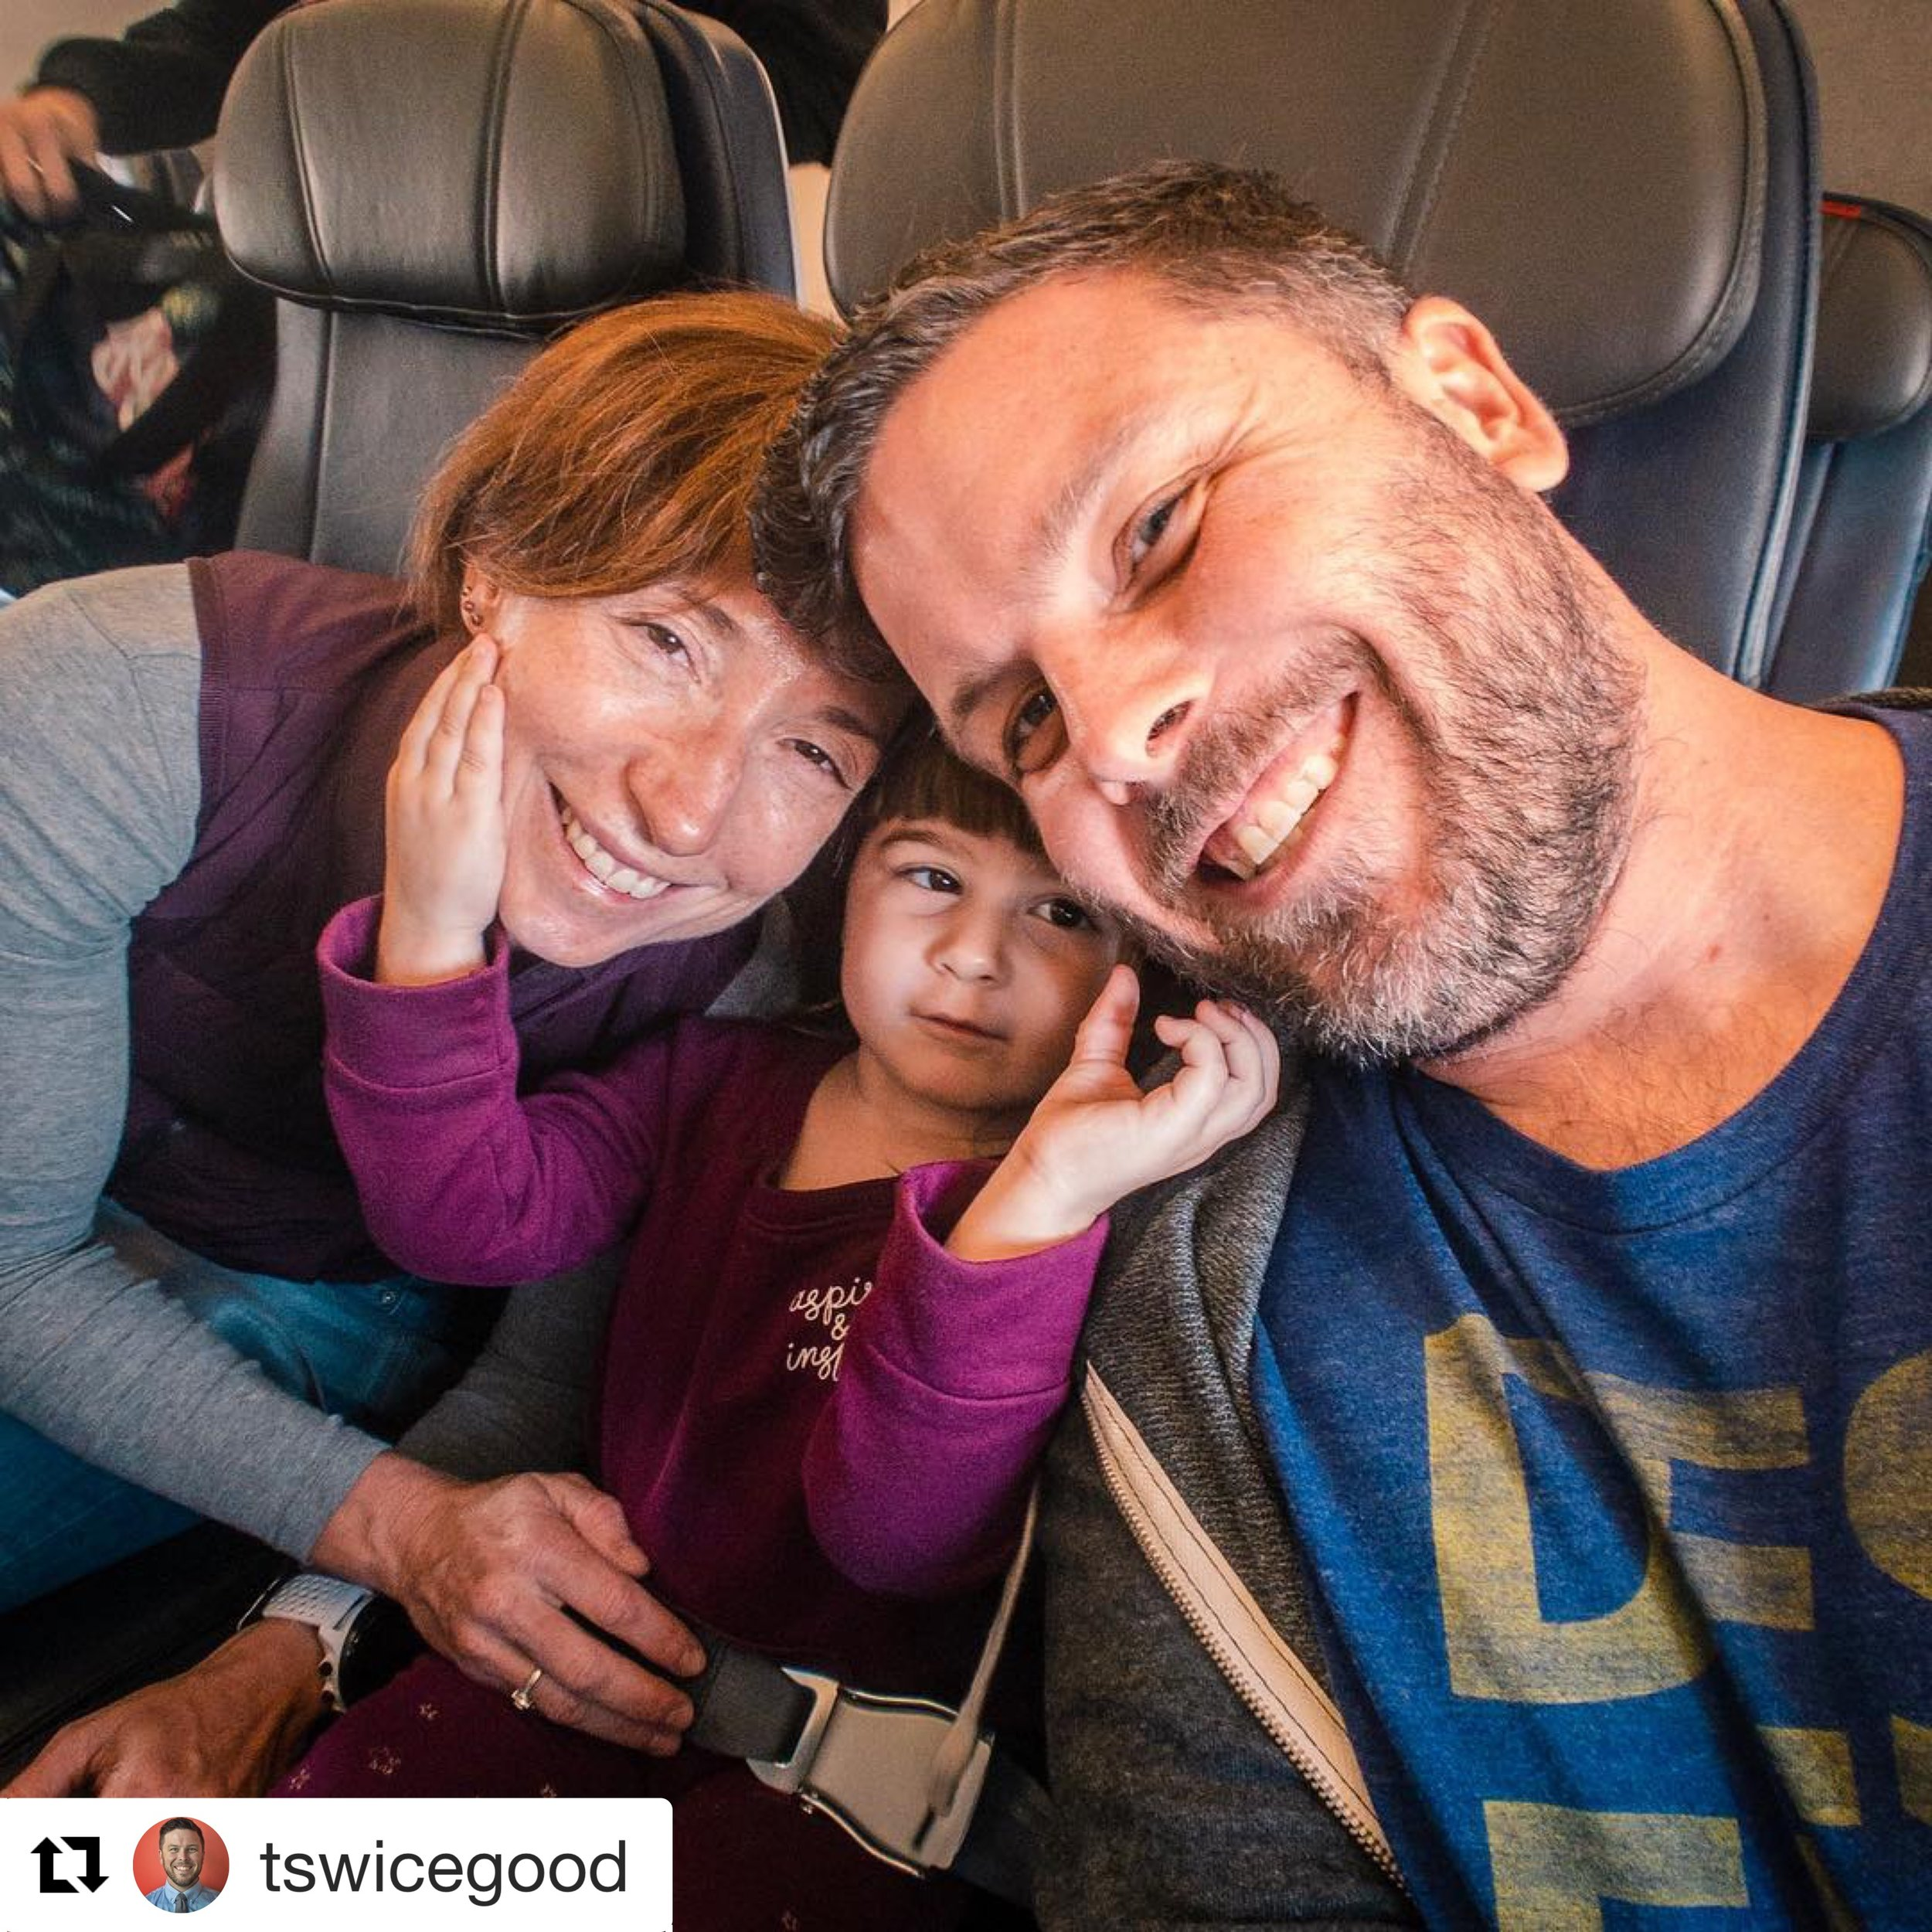 On the plane to Boston with my loves.